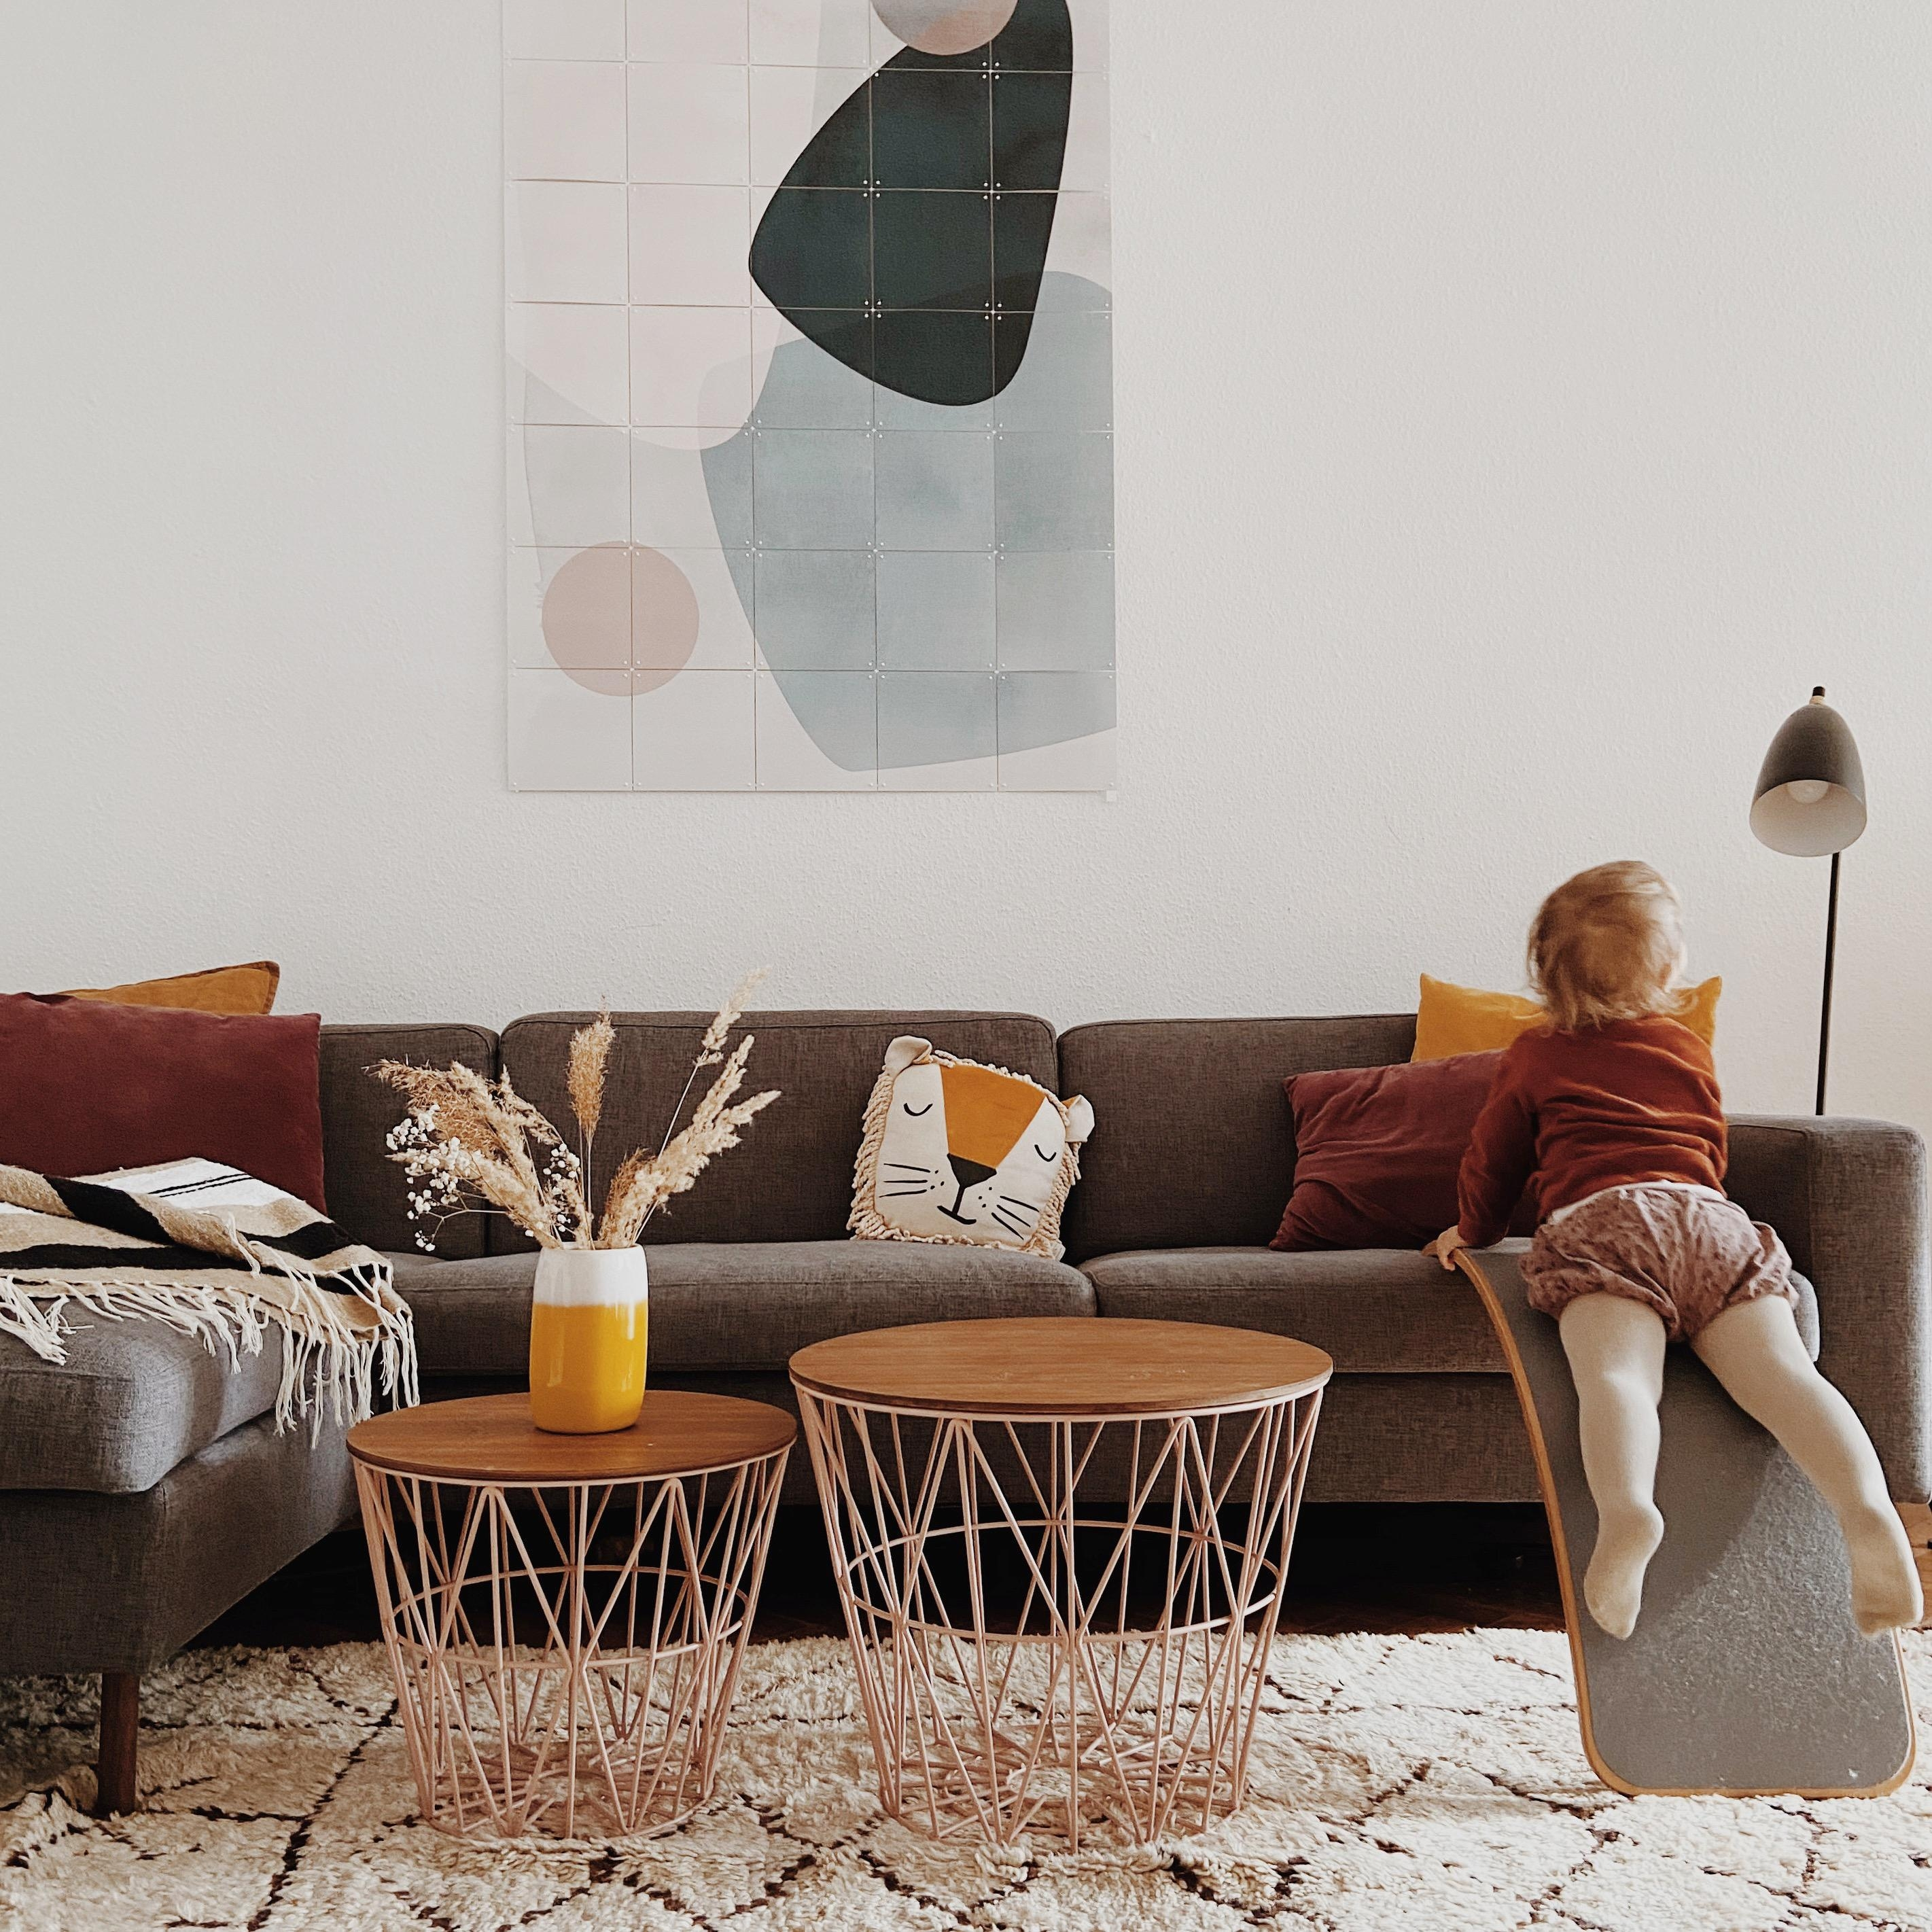 Welcome to our #livingroom!